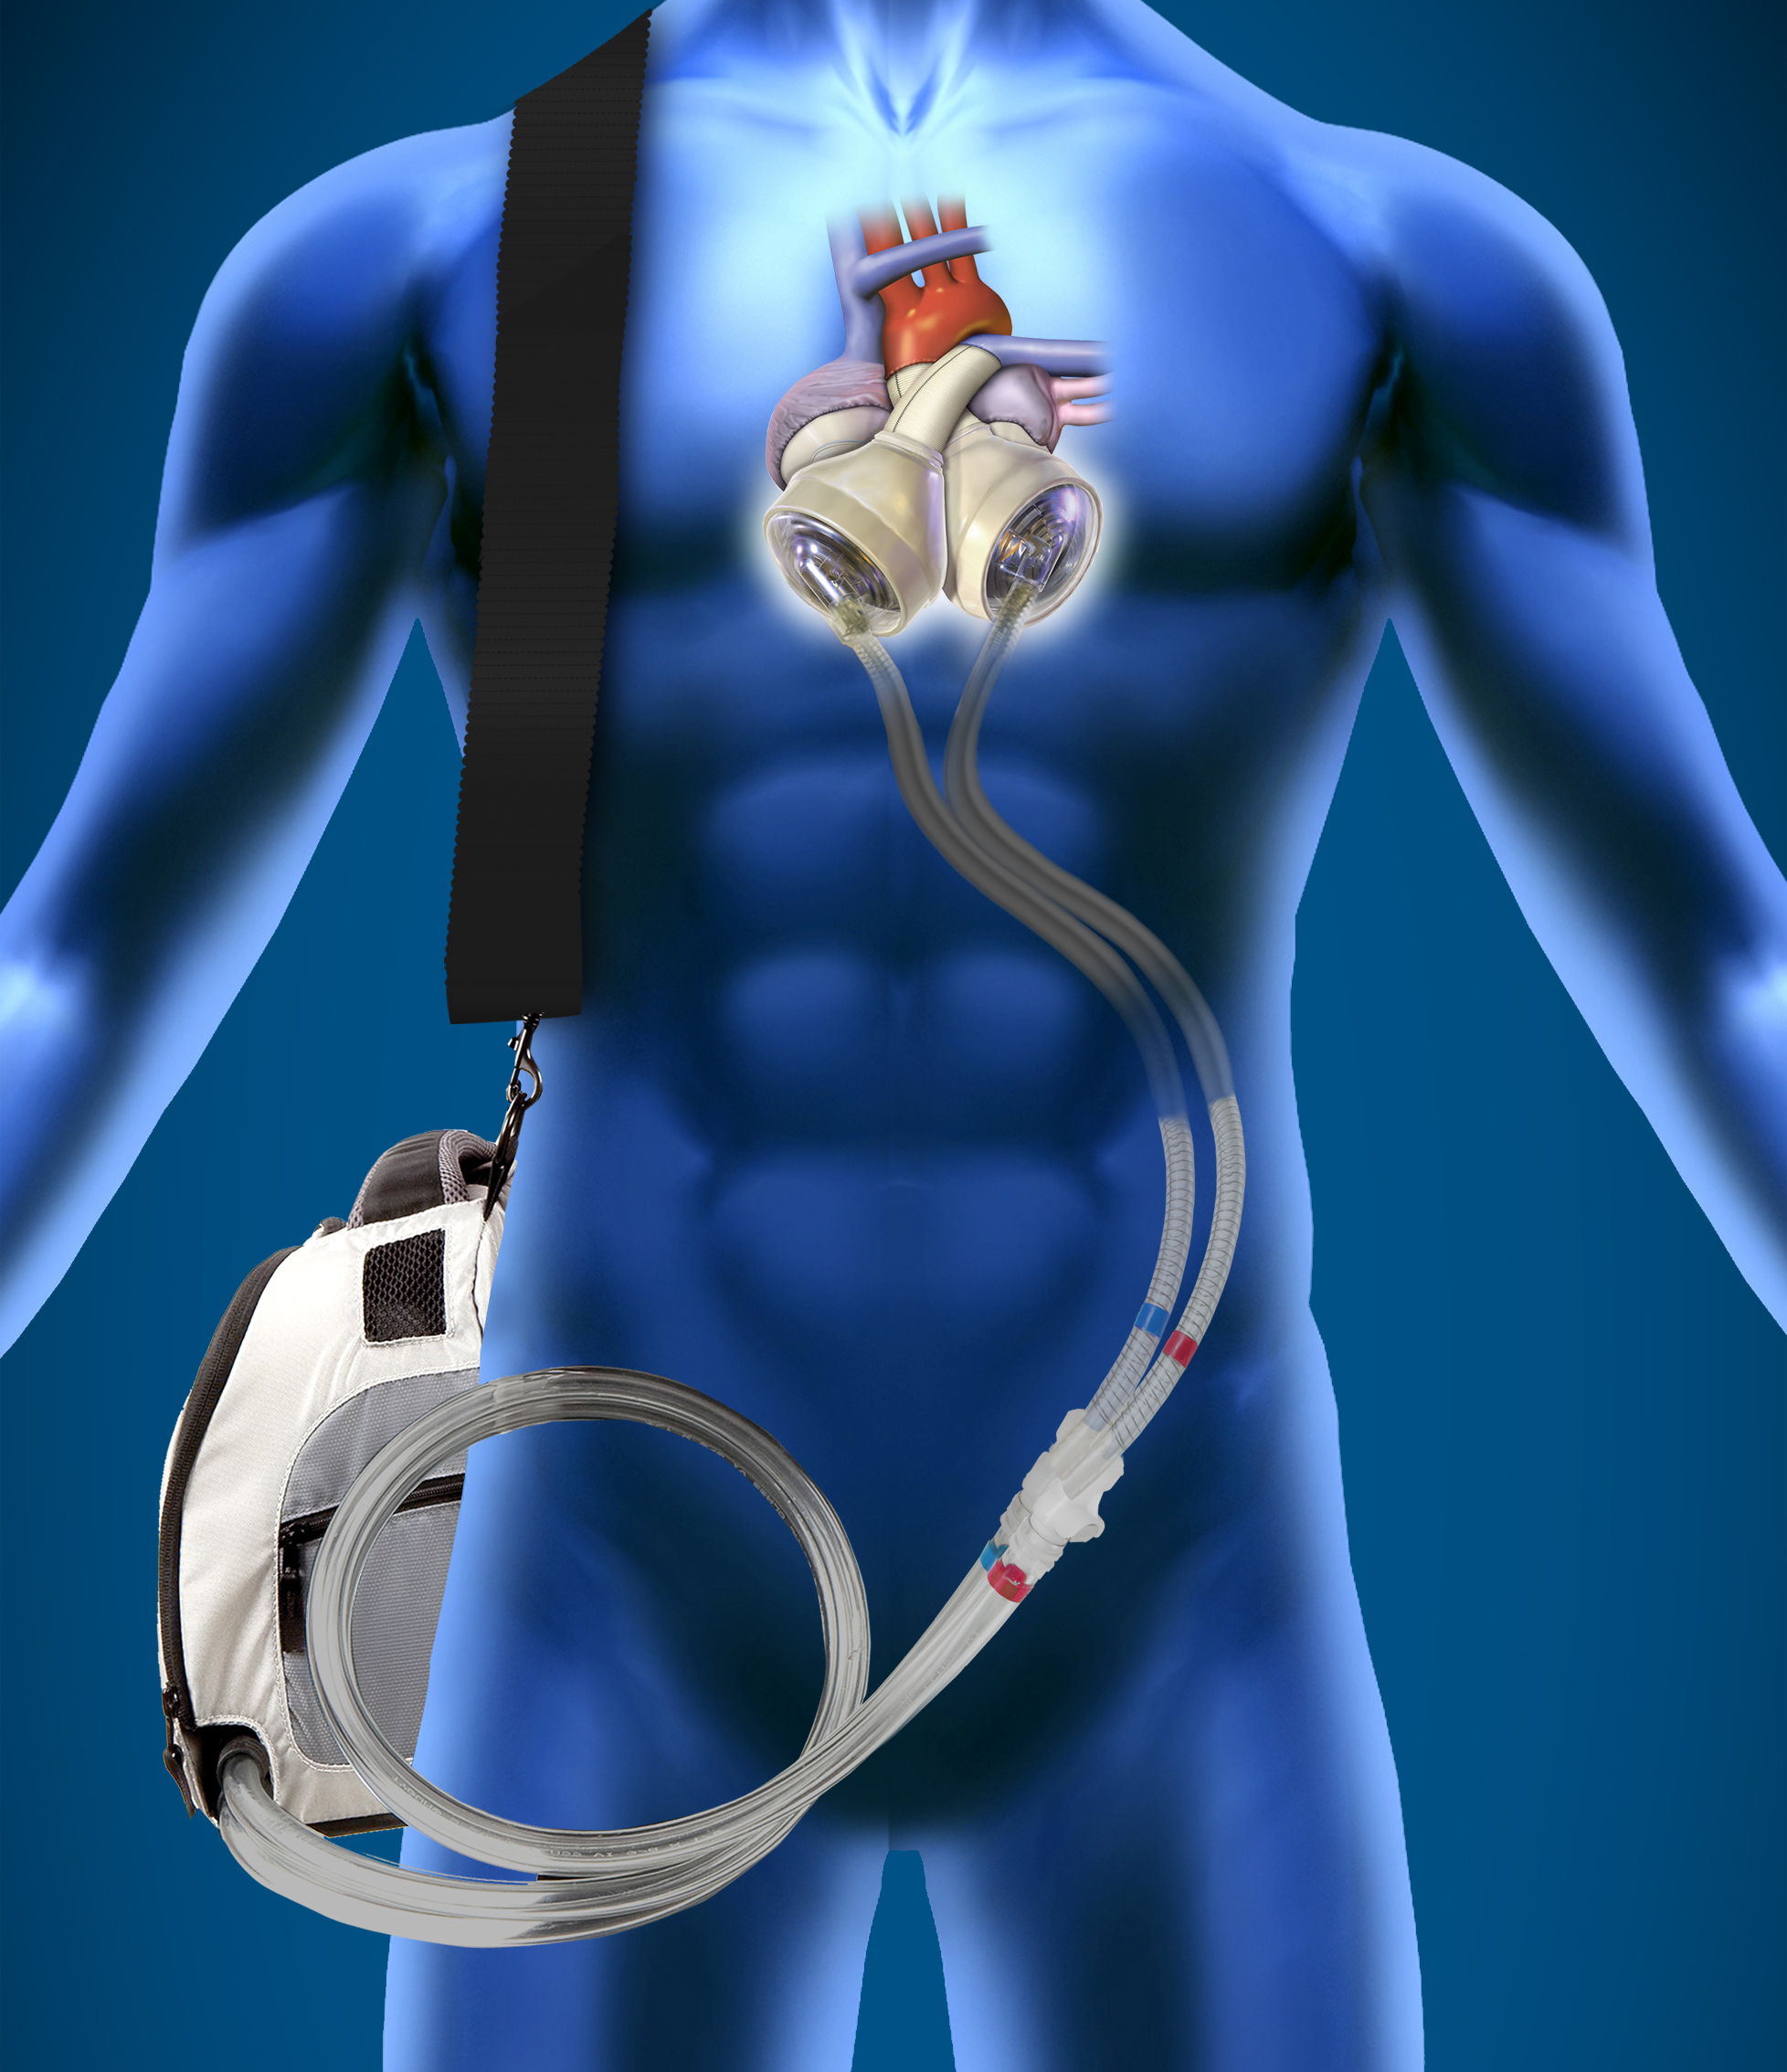 Illustration of SynCardia Total Artificial Heart